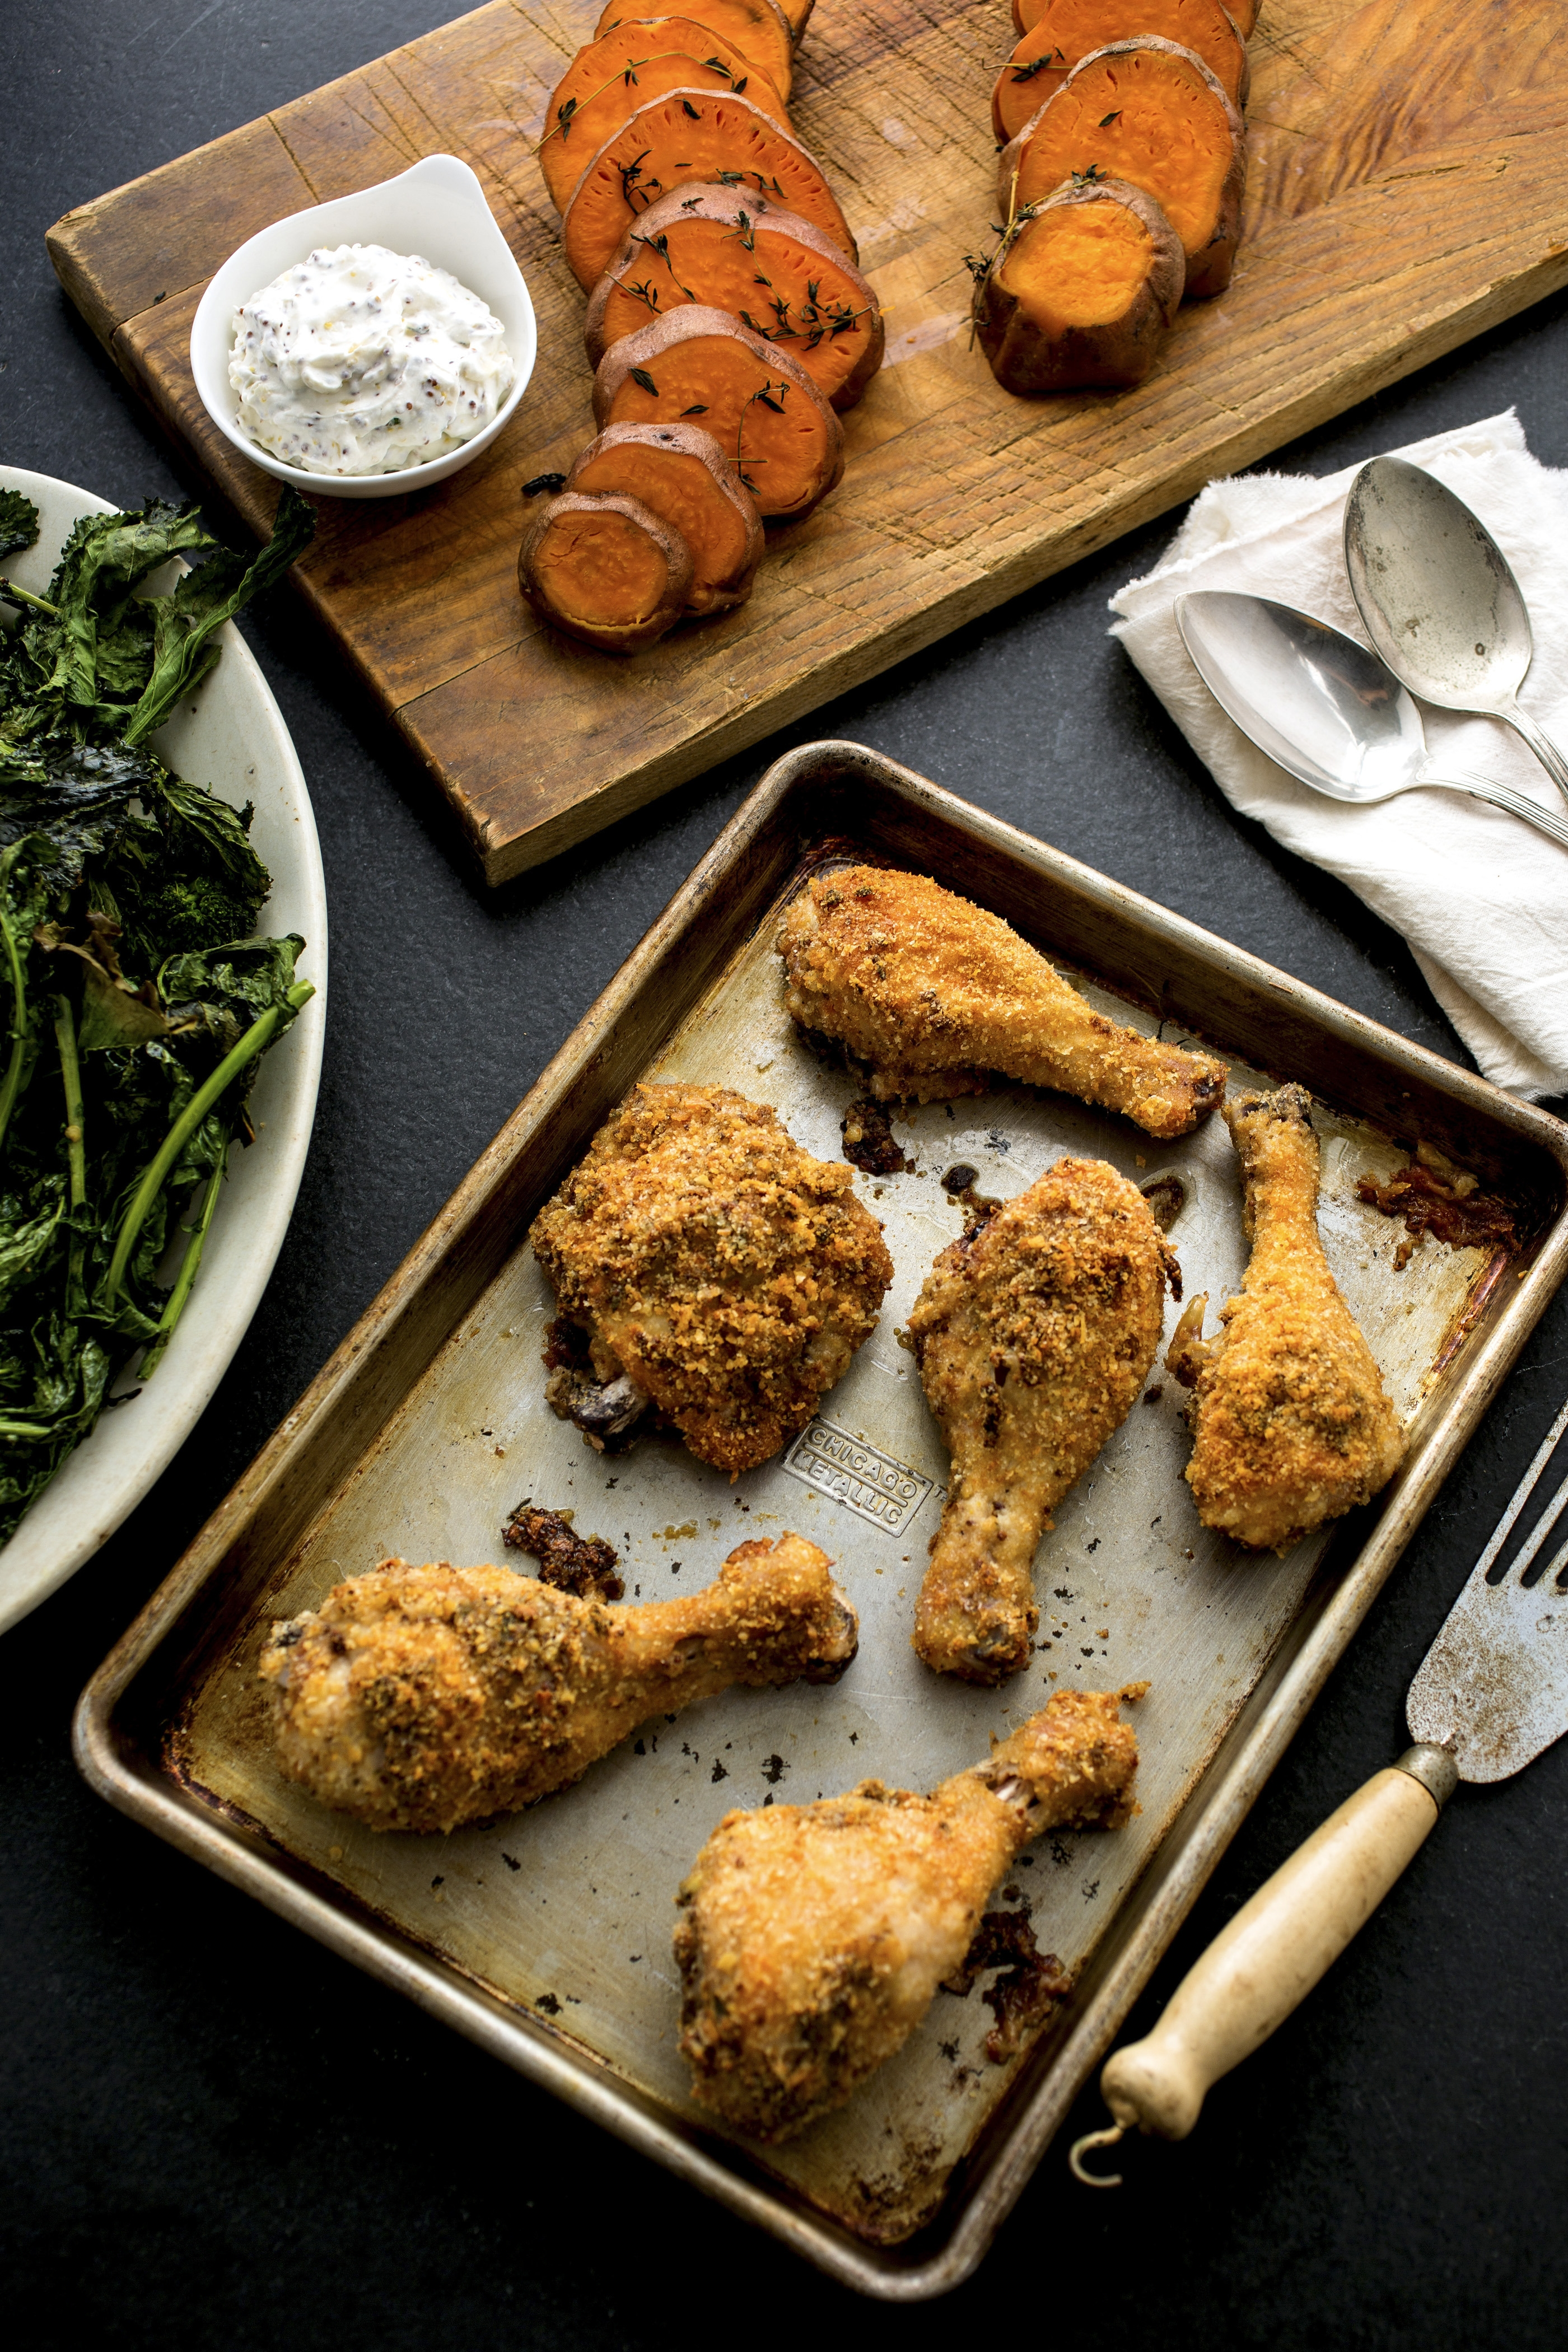 Chicken with mustard breadcrumbs, sweet potatoes with thyme and broccoli rabe, all cooked on a single sheet pan.